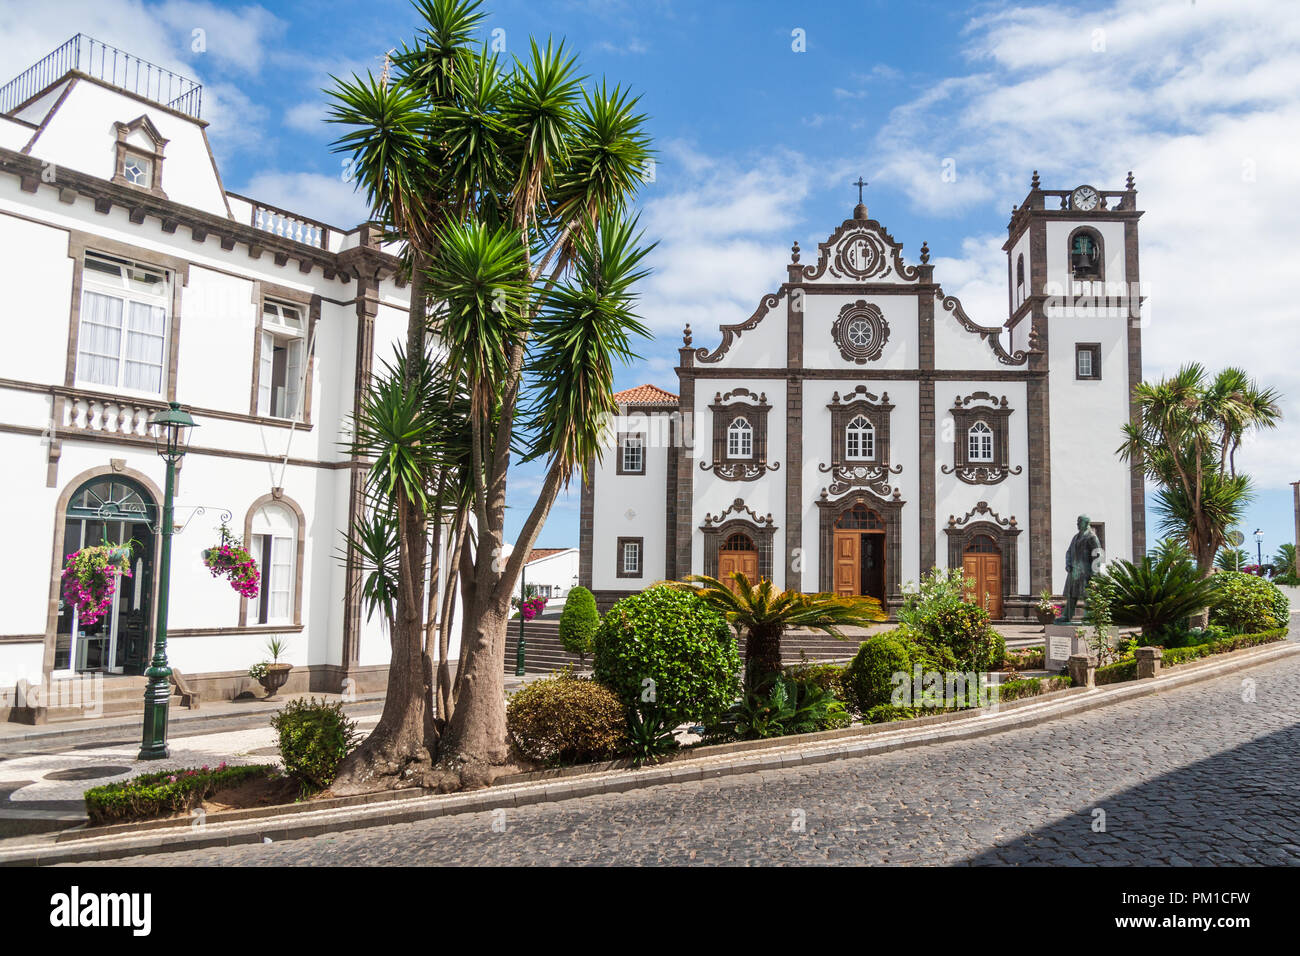 Church of Saint George sao miguel azores - Stock Image